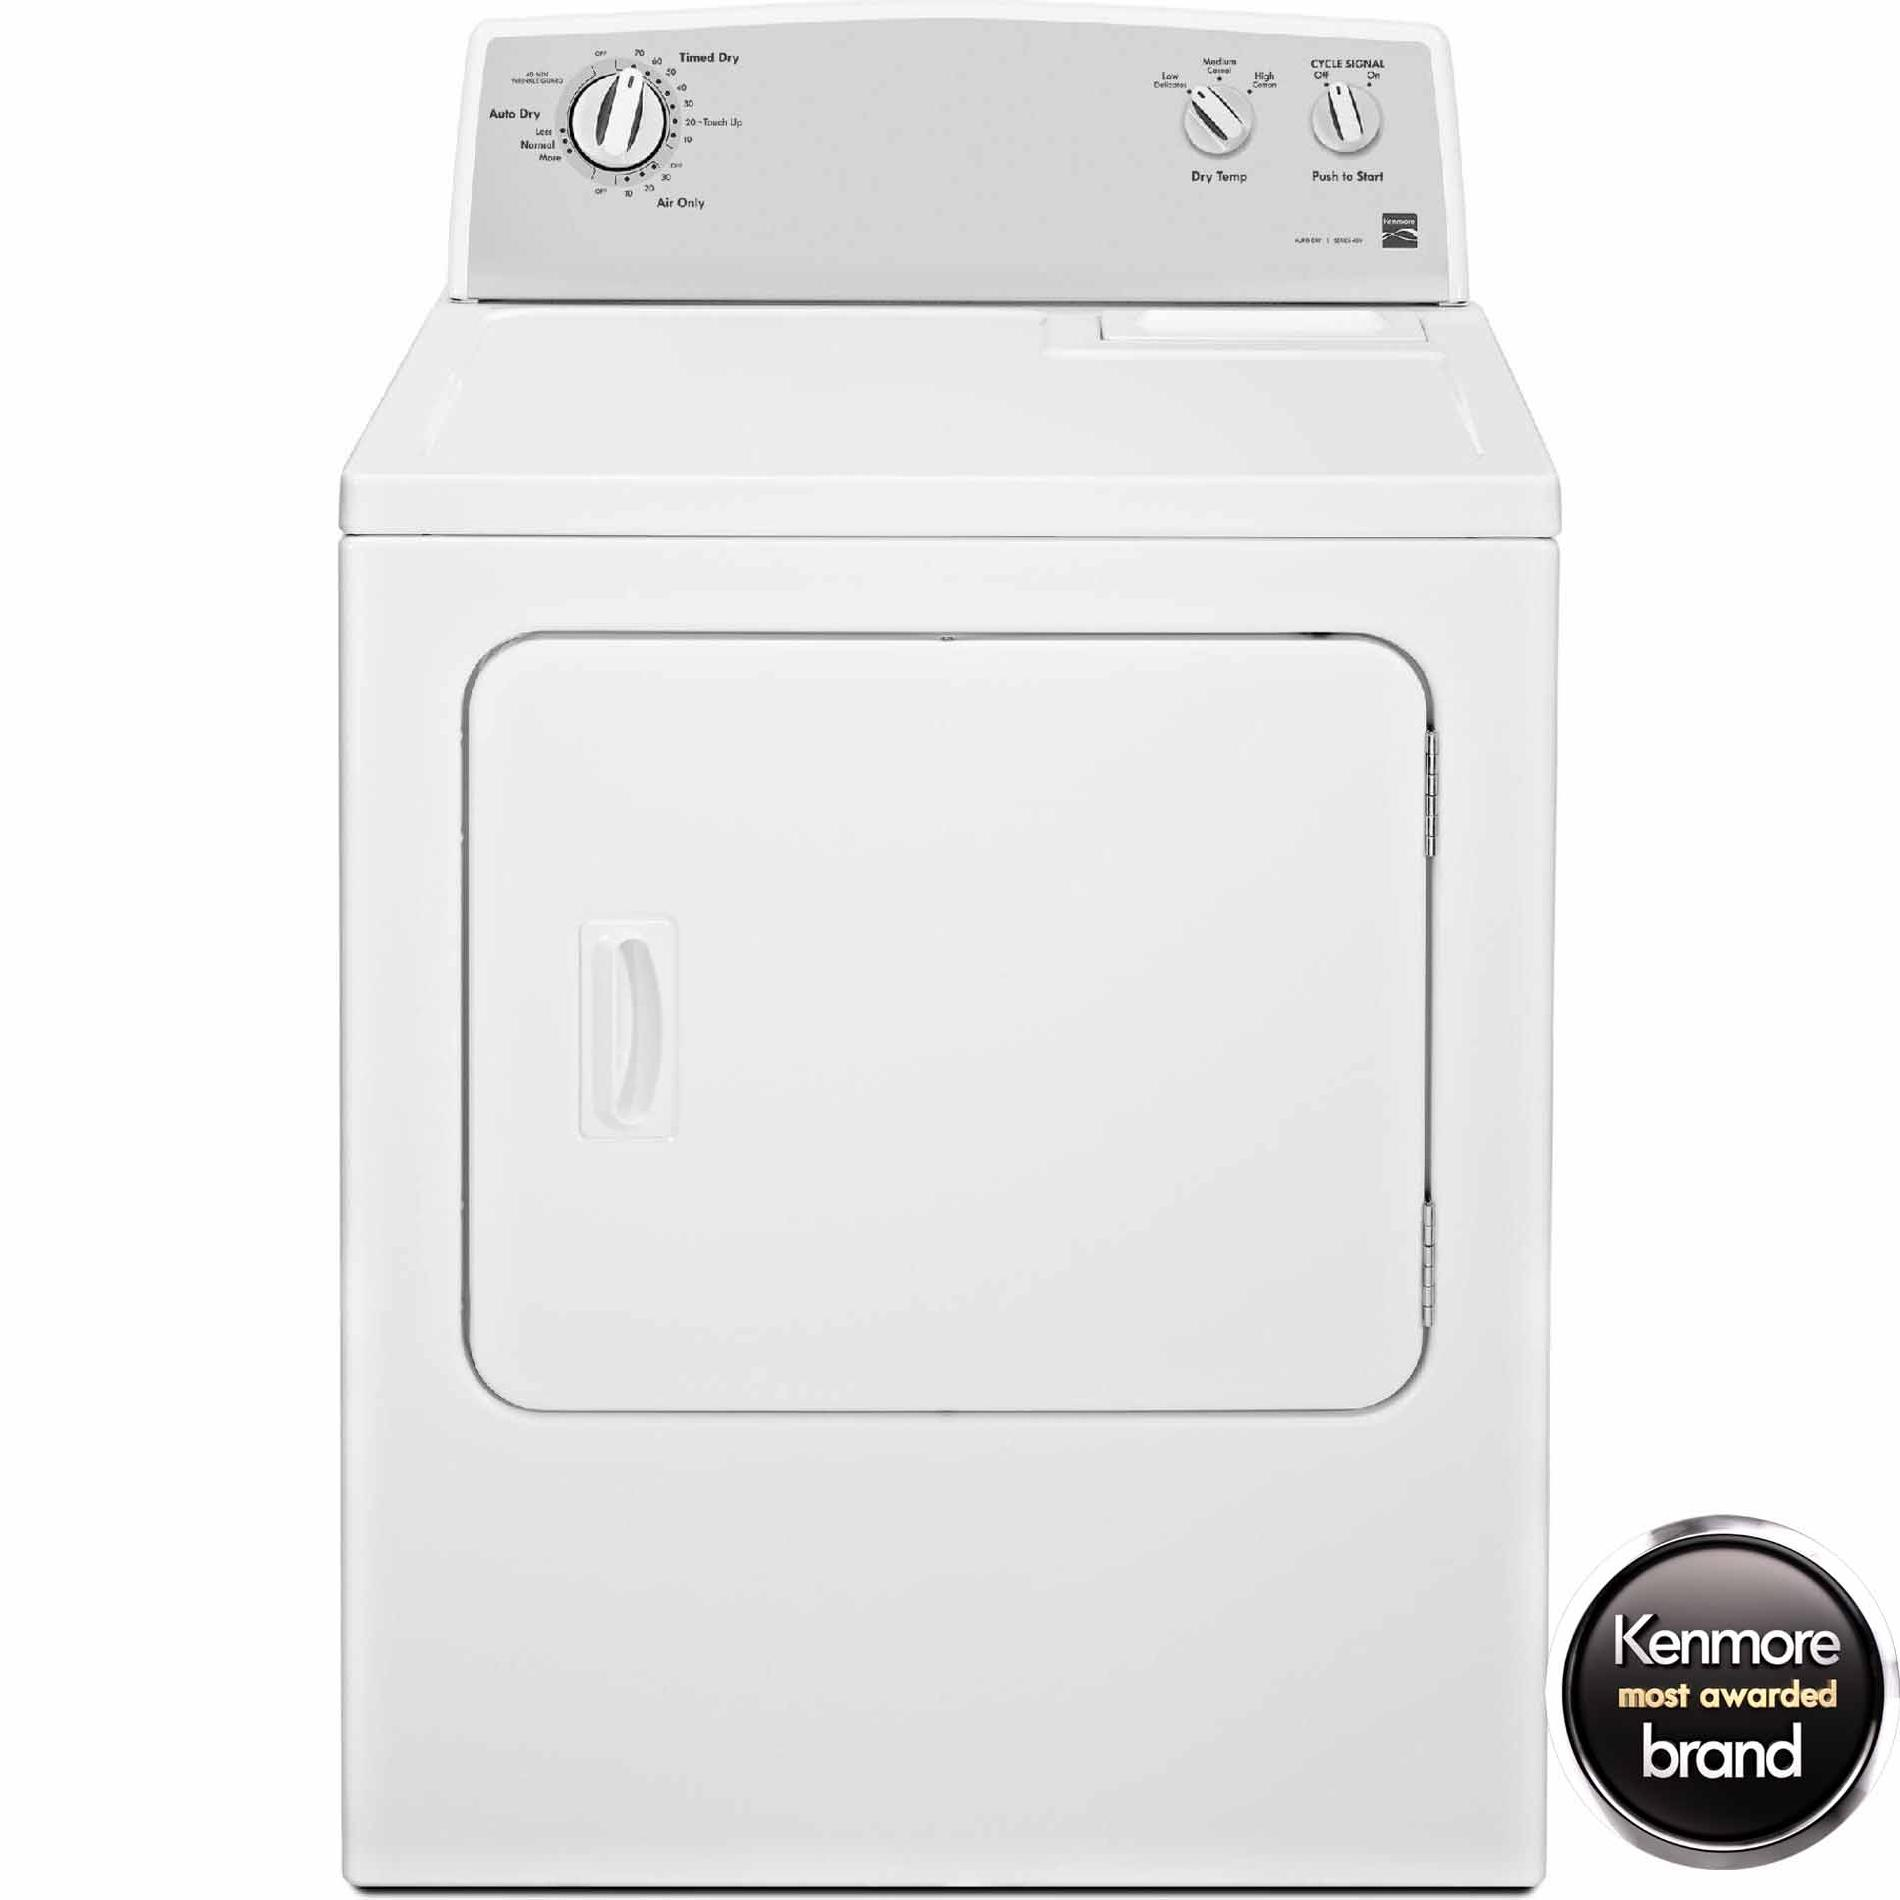 Kenmore 7.0 cu. ft. Gas Dryer w/ Auto Dry - White